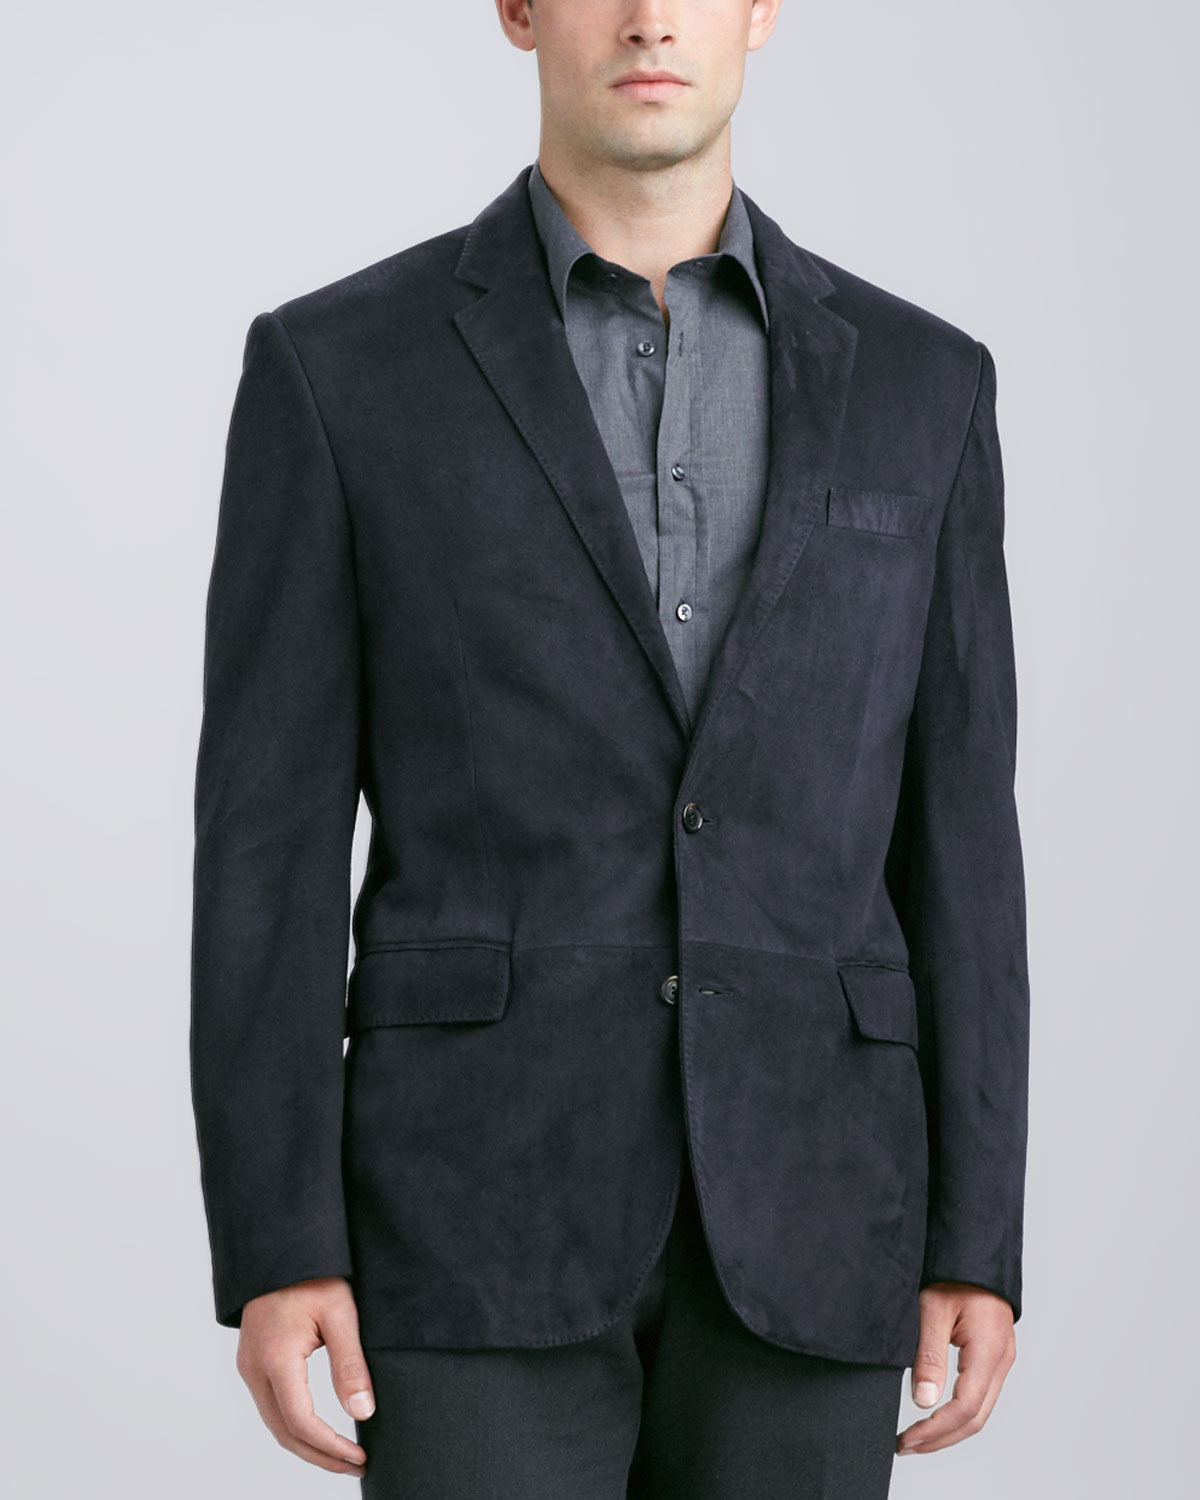 Ralph lauren black label Anthony Suede Sport Coat in Blue for Men ...